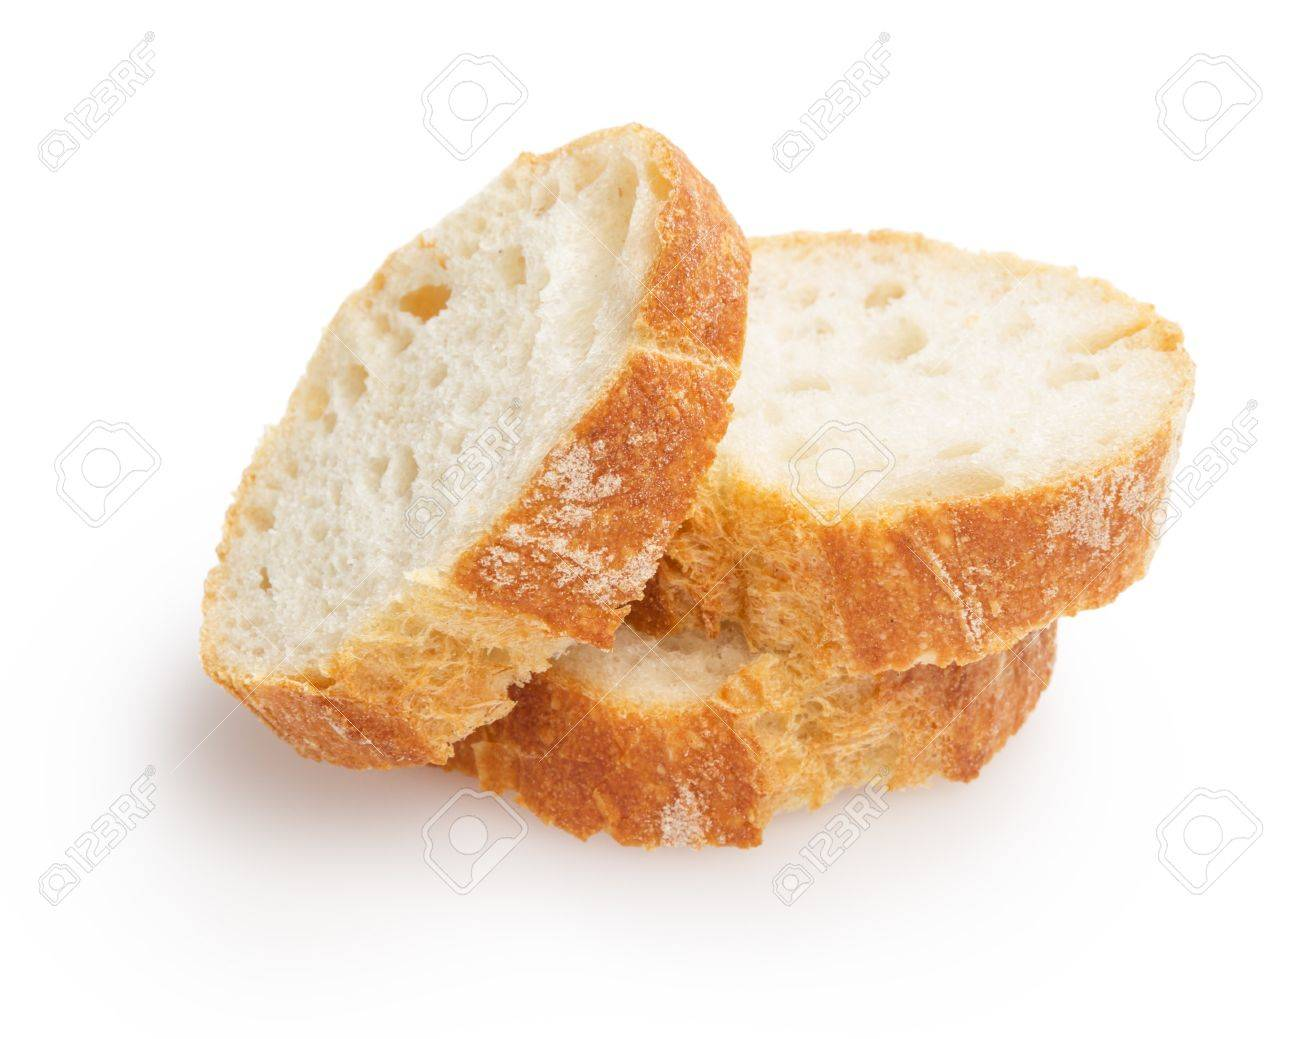 French Baguette Slices Isolated On White Background Stock Photo